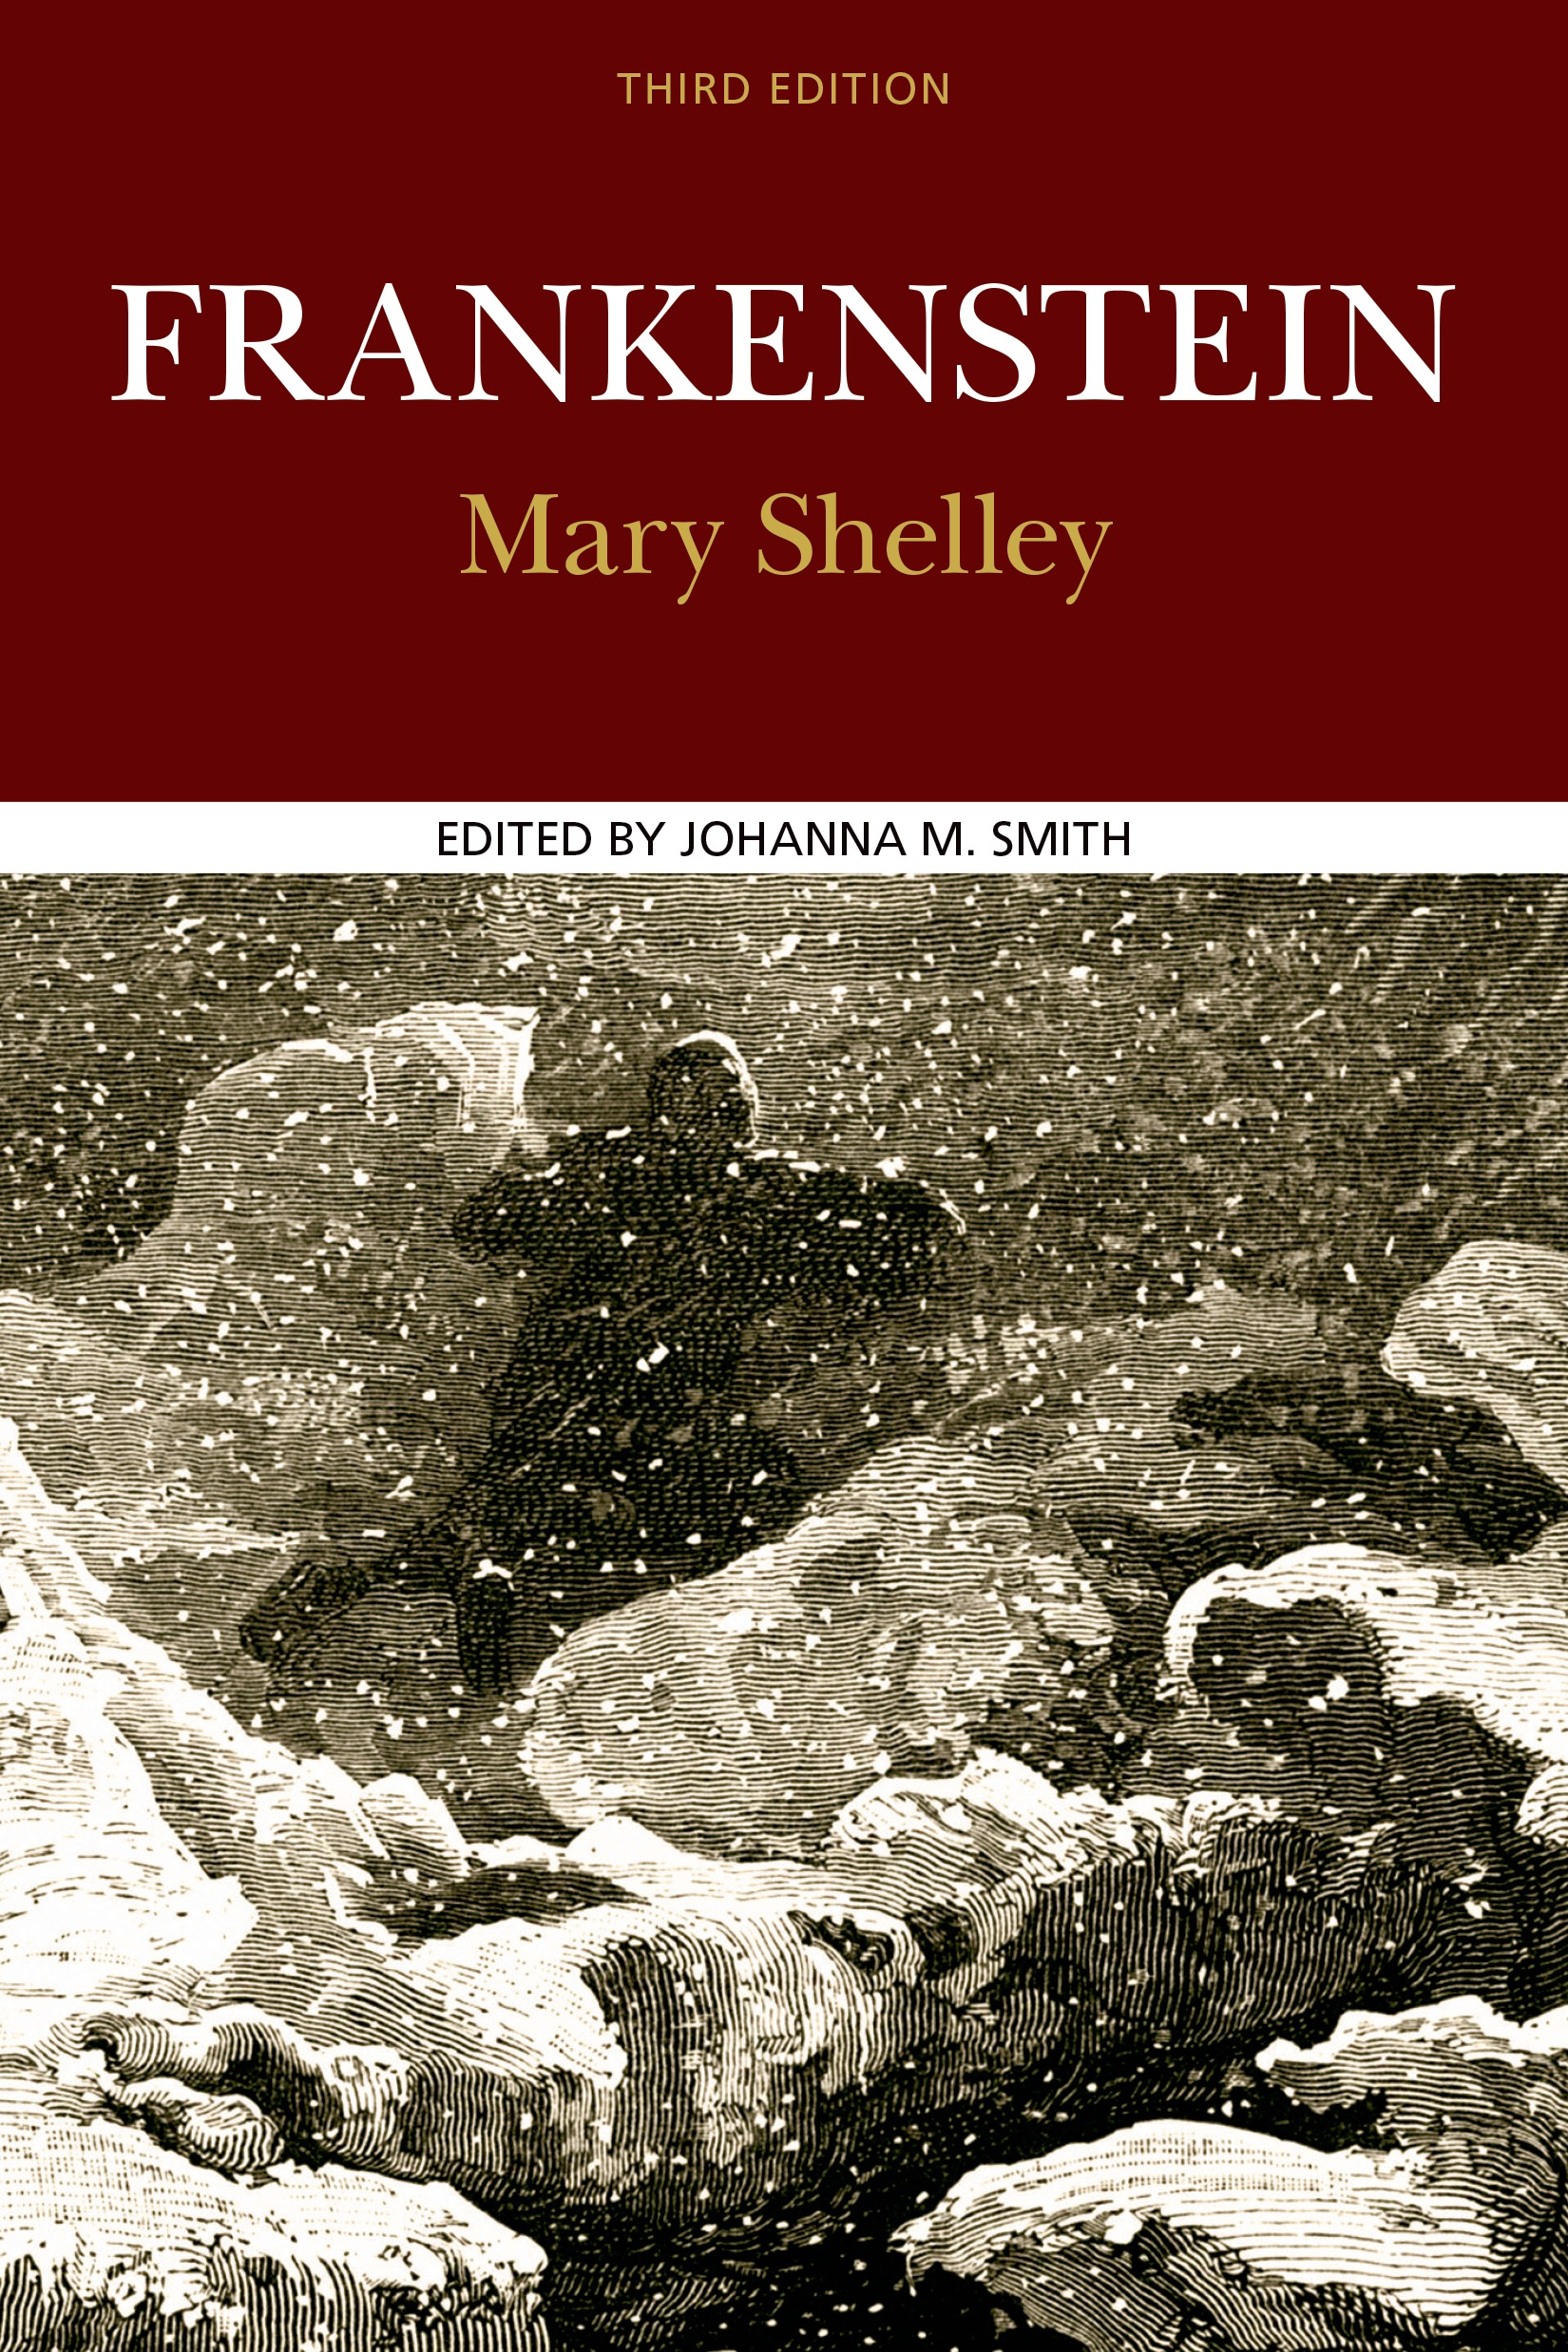 macmillan learning frankenstein third edition by mary shelley image frankenstein